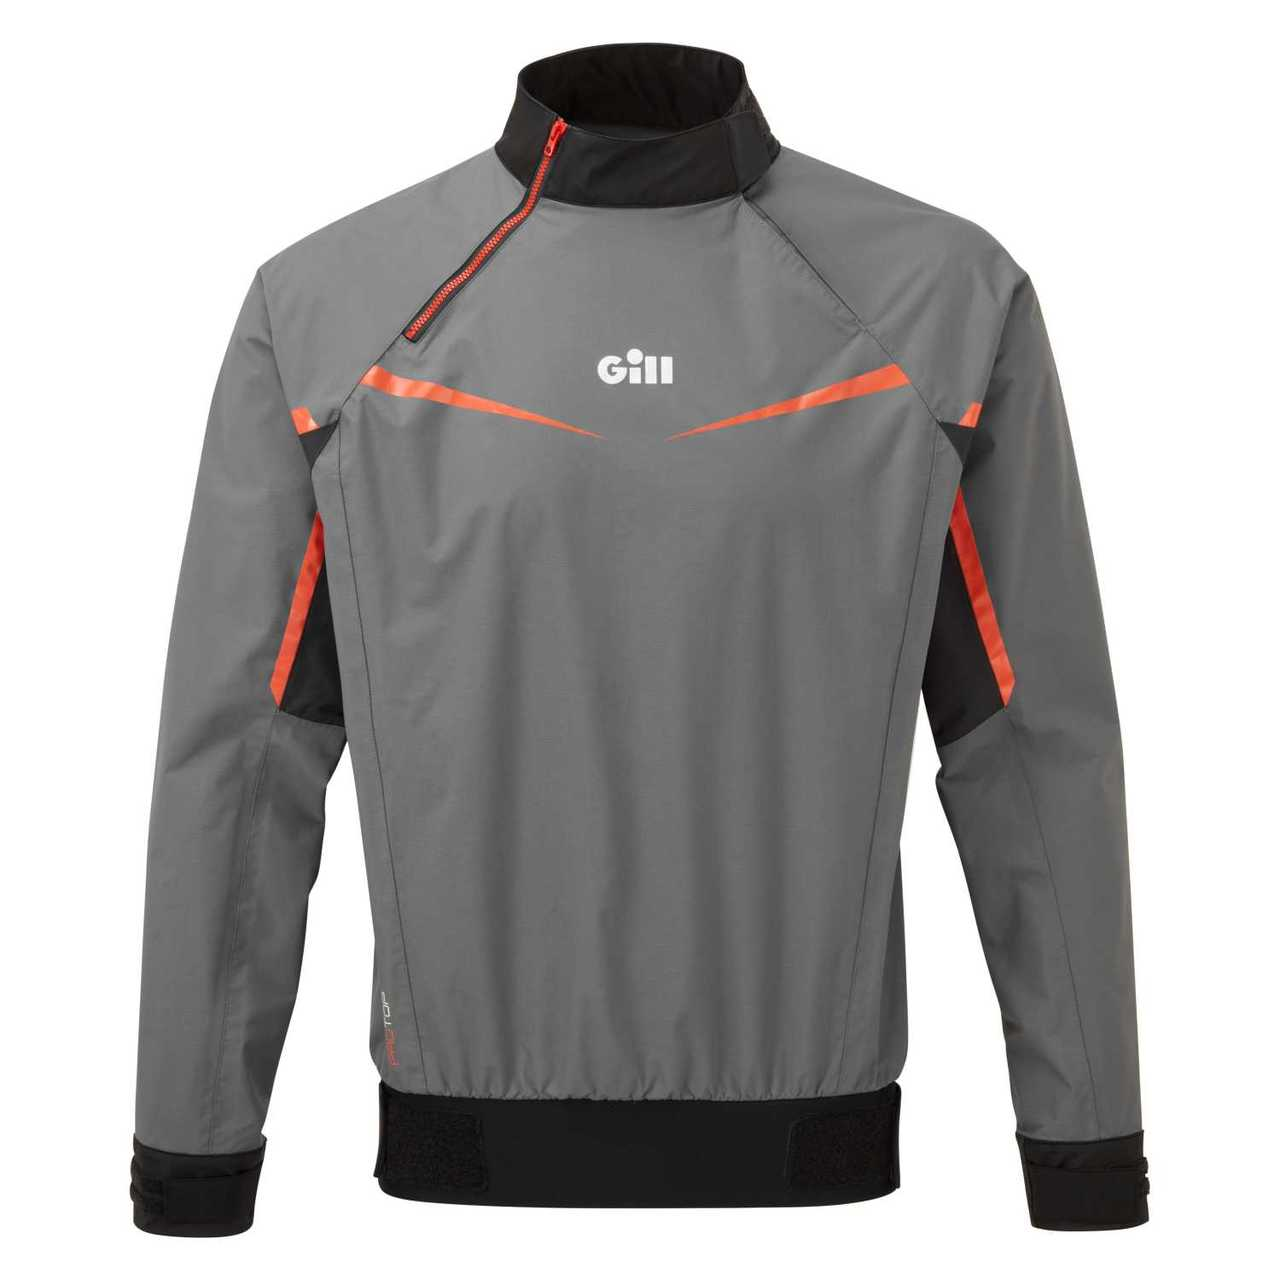 gill-mens-pro-top-5013-steel-grey-1-79374.1576274076.jpg